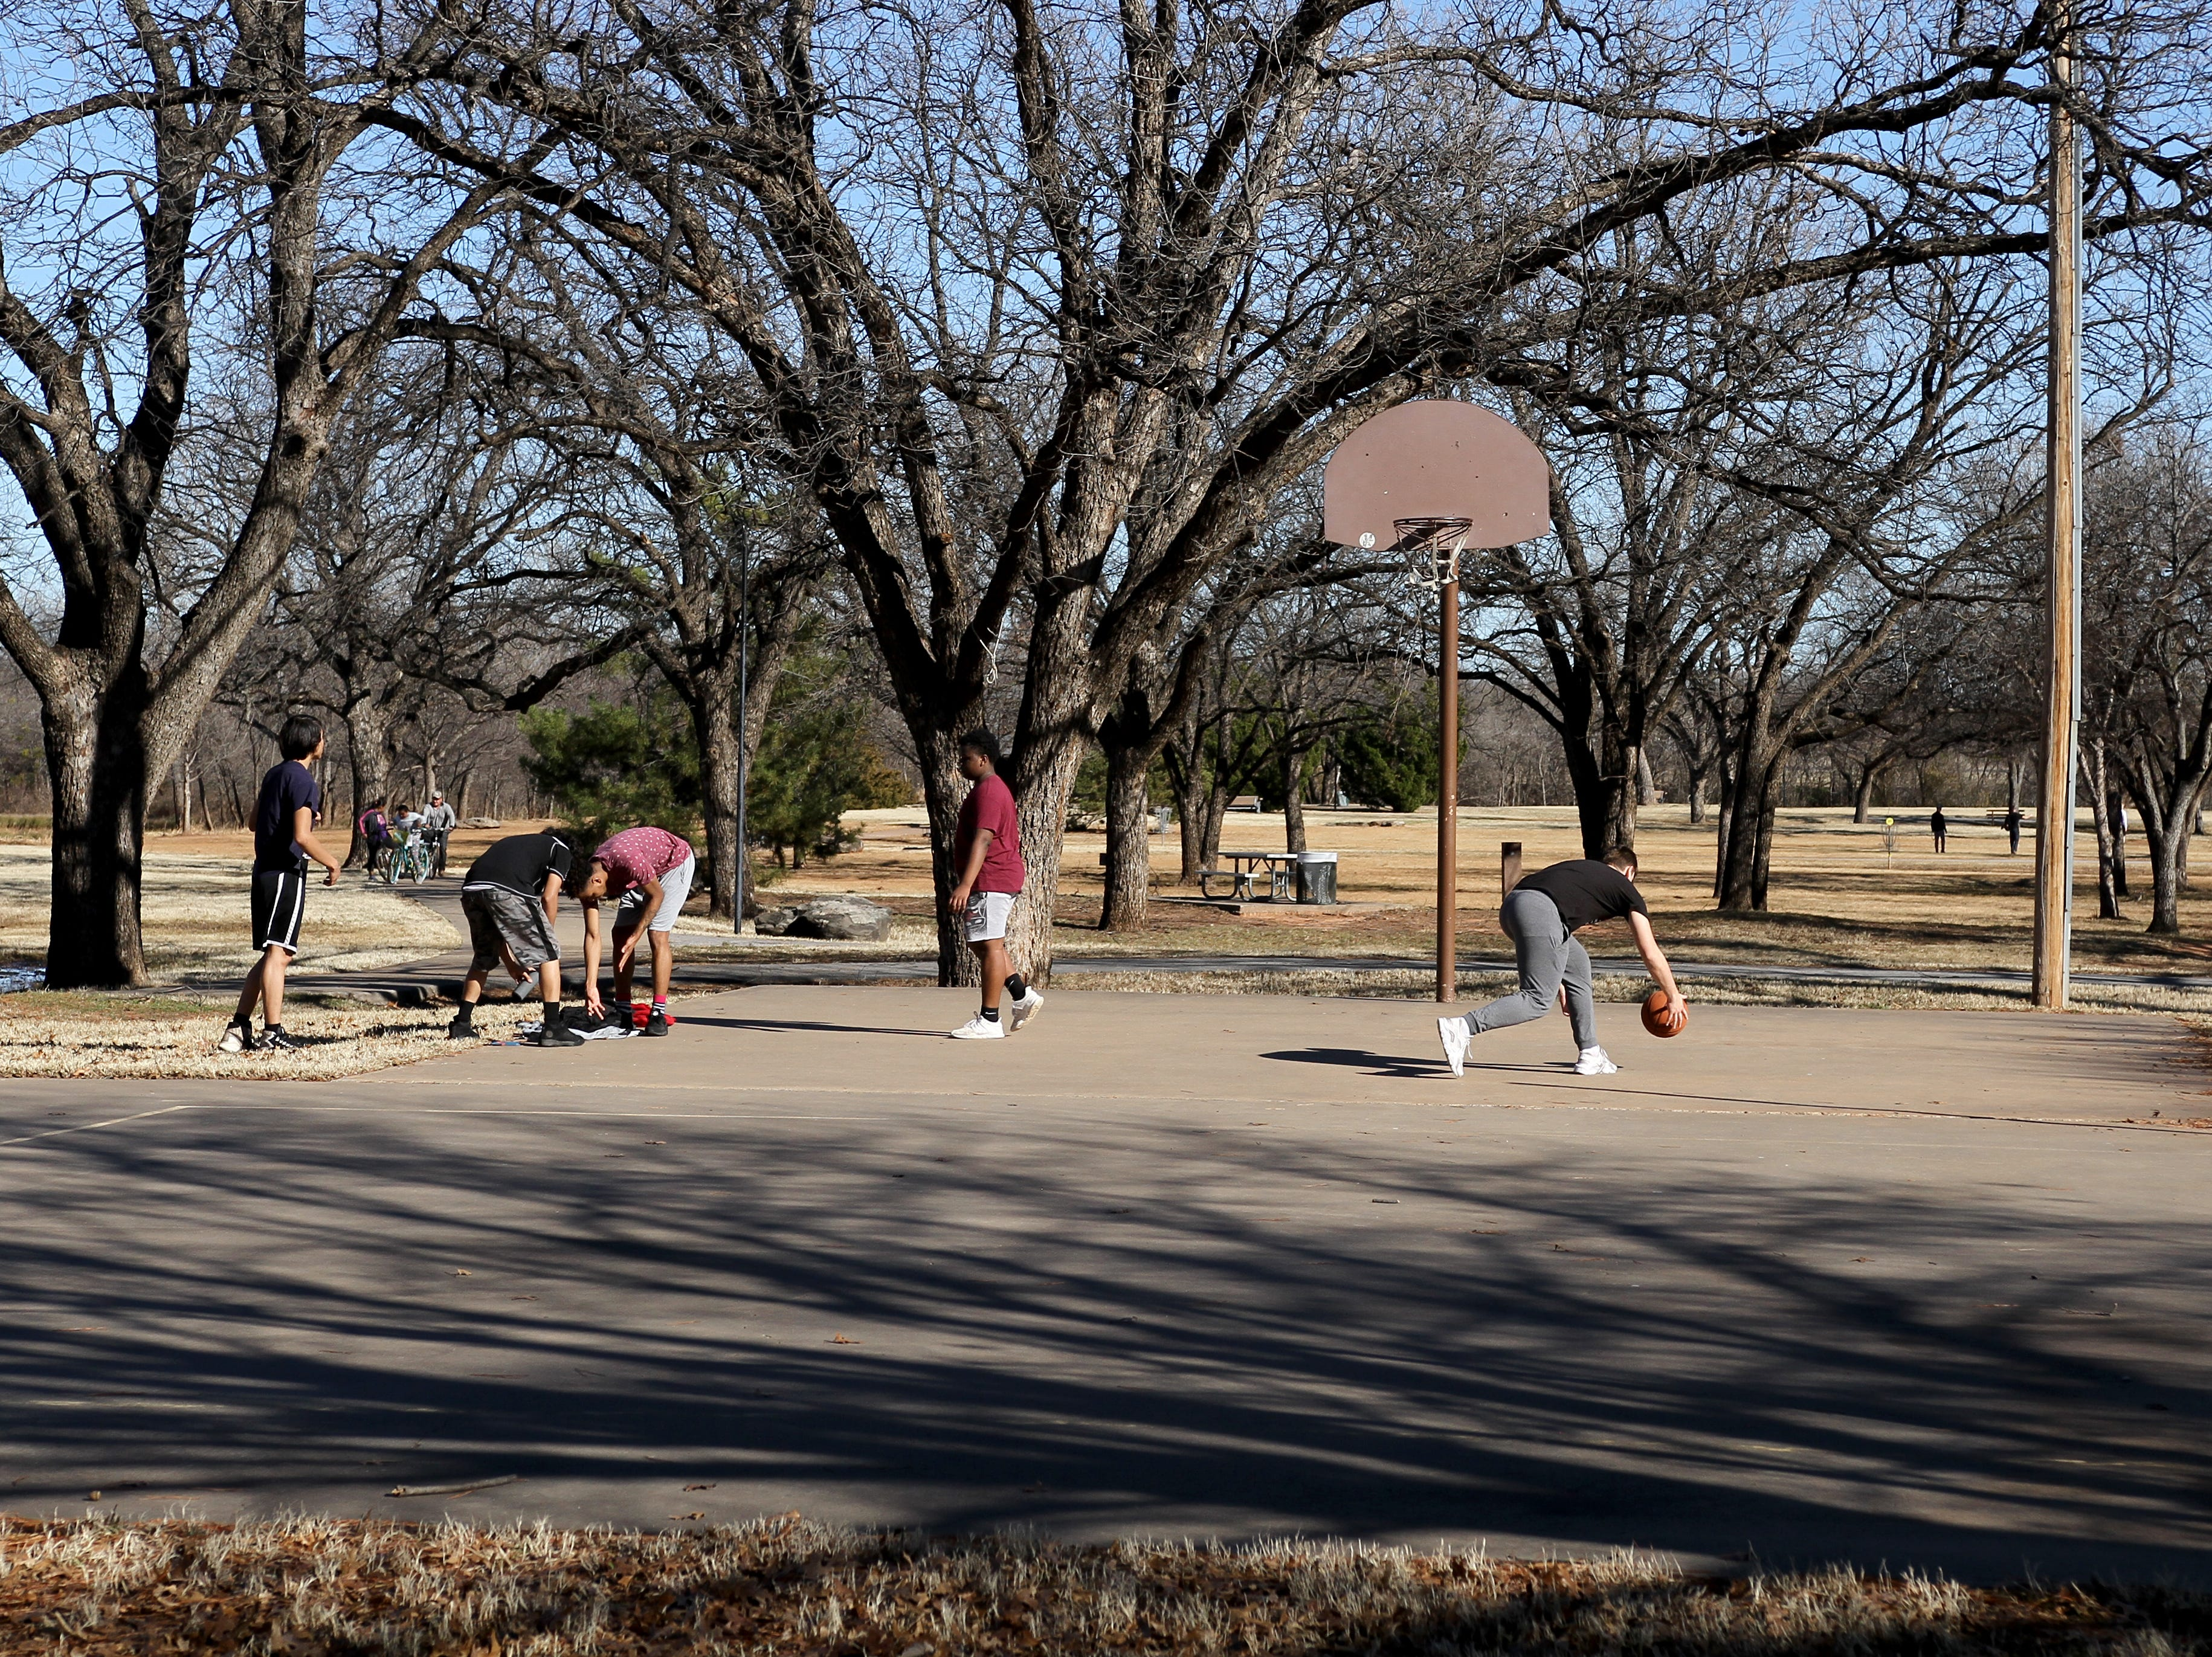 People took advantage of the warm weather Saturday, Jan. 5, 2019, by going out to play and walk at Lucy Park.